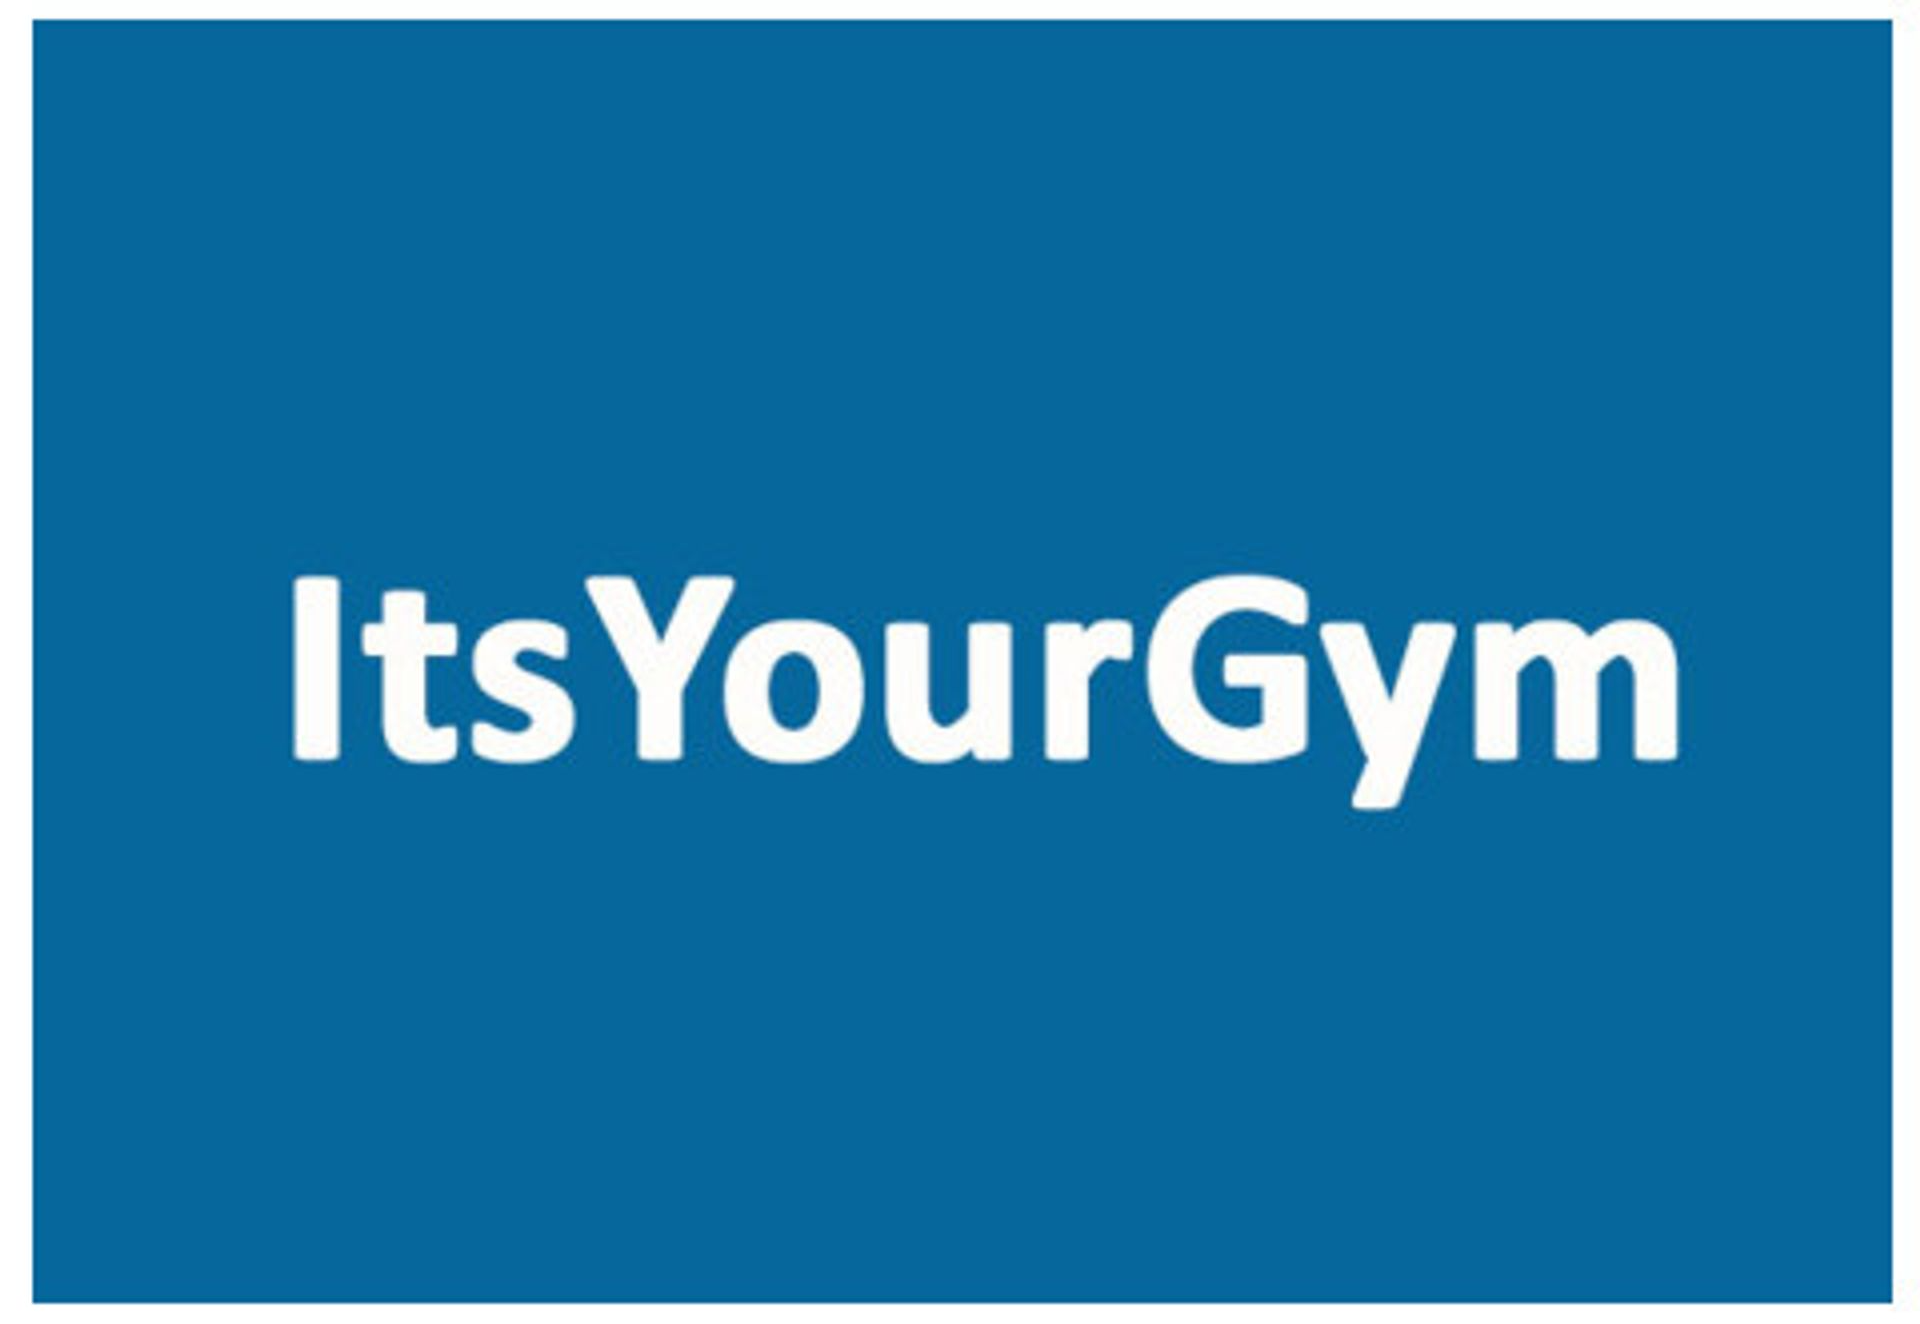 ItsYourGym